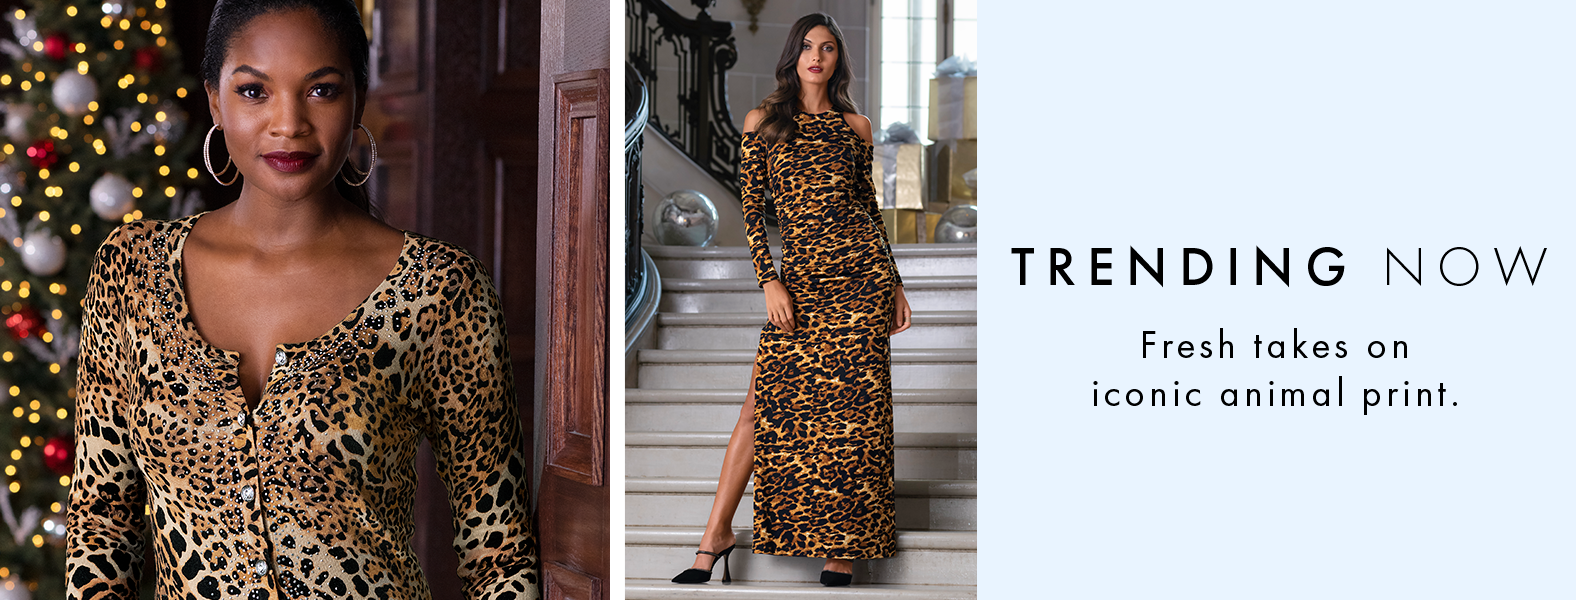 left model wearing a leopard print cardigan with jewel embellishments. right model wearing a long-sleeve cold-shoulder leopard print side slit gown and black heels. text: trending now. fresh takes on iconic animal print.